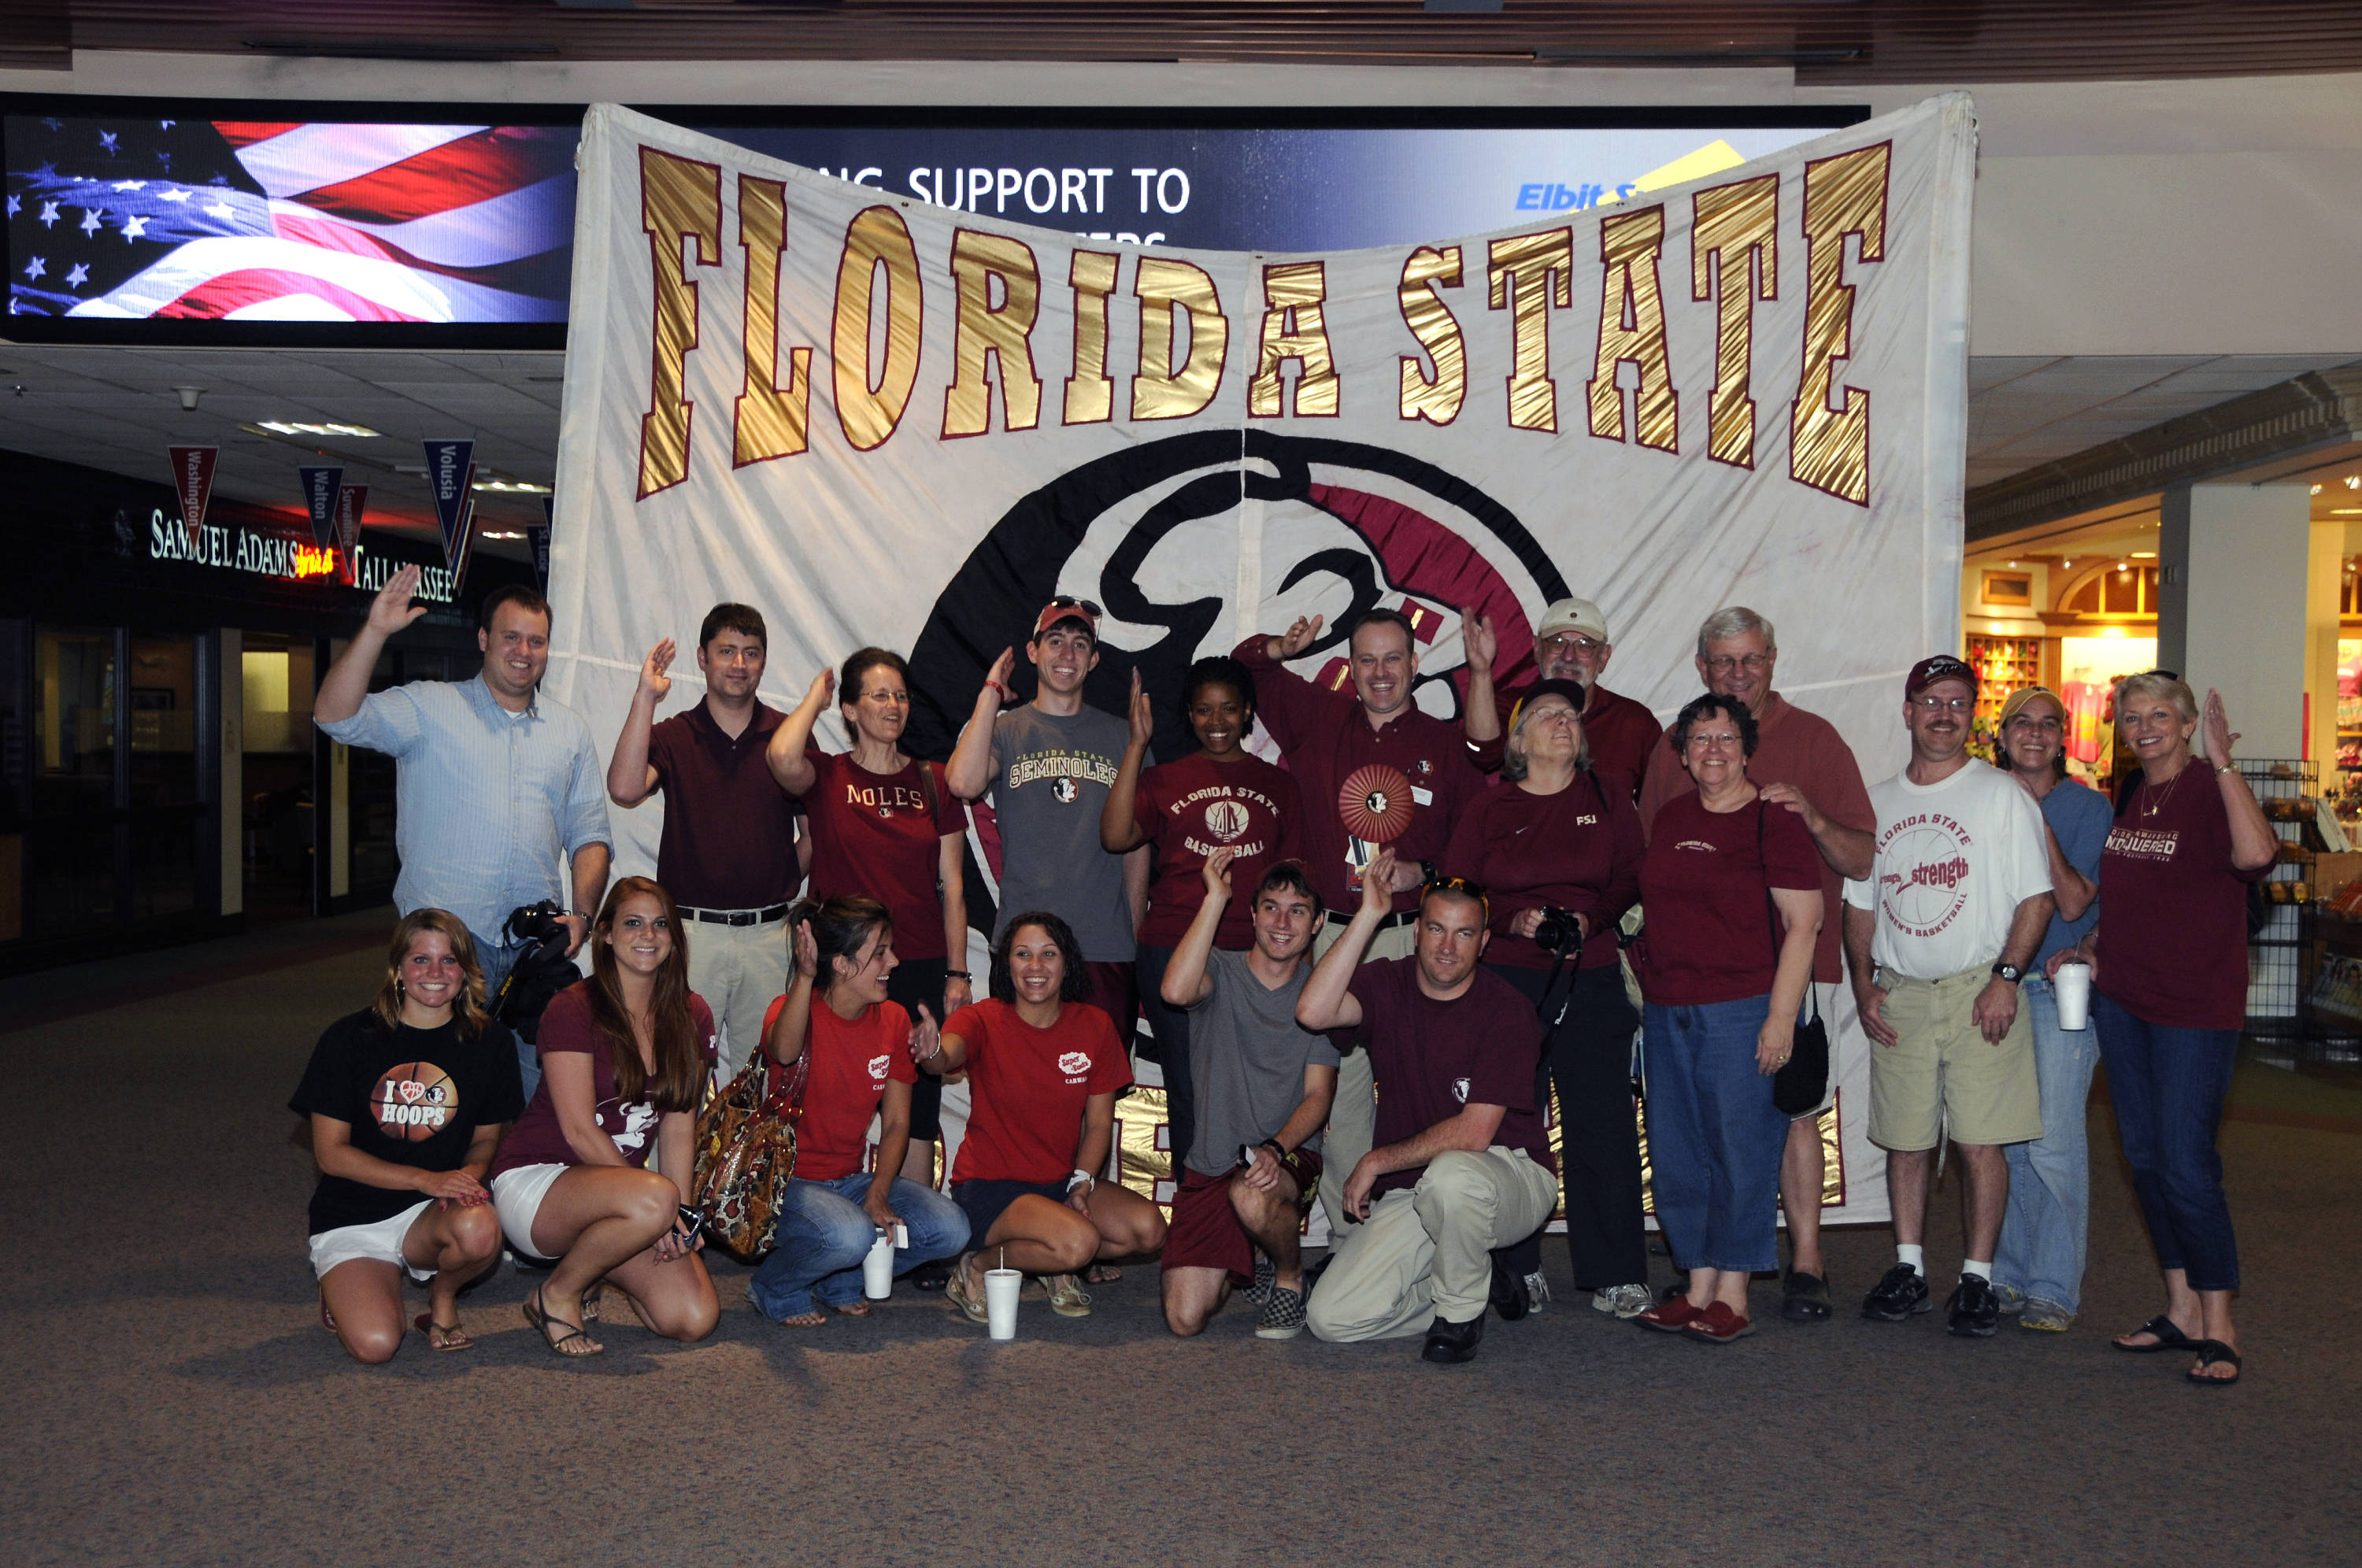 Seminole fans pose in front of a banner as they wait for the men's basketball team to arrive at the Tallahassee Airport